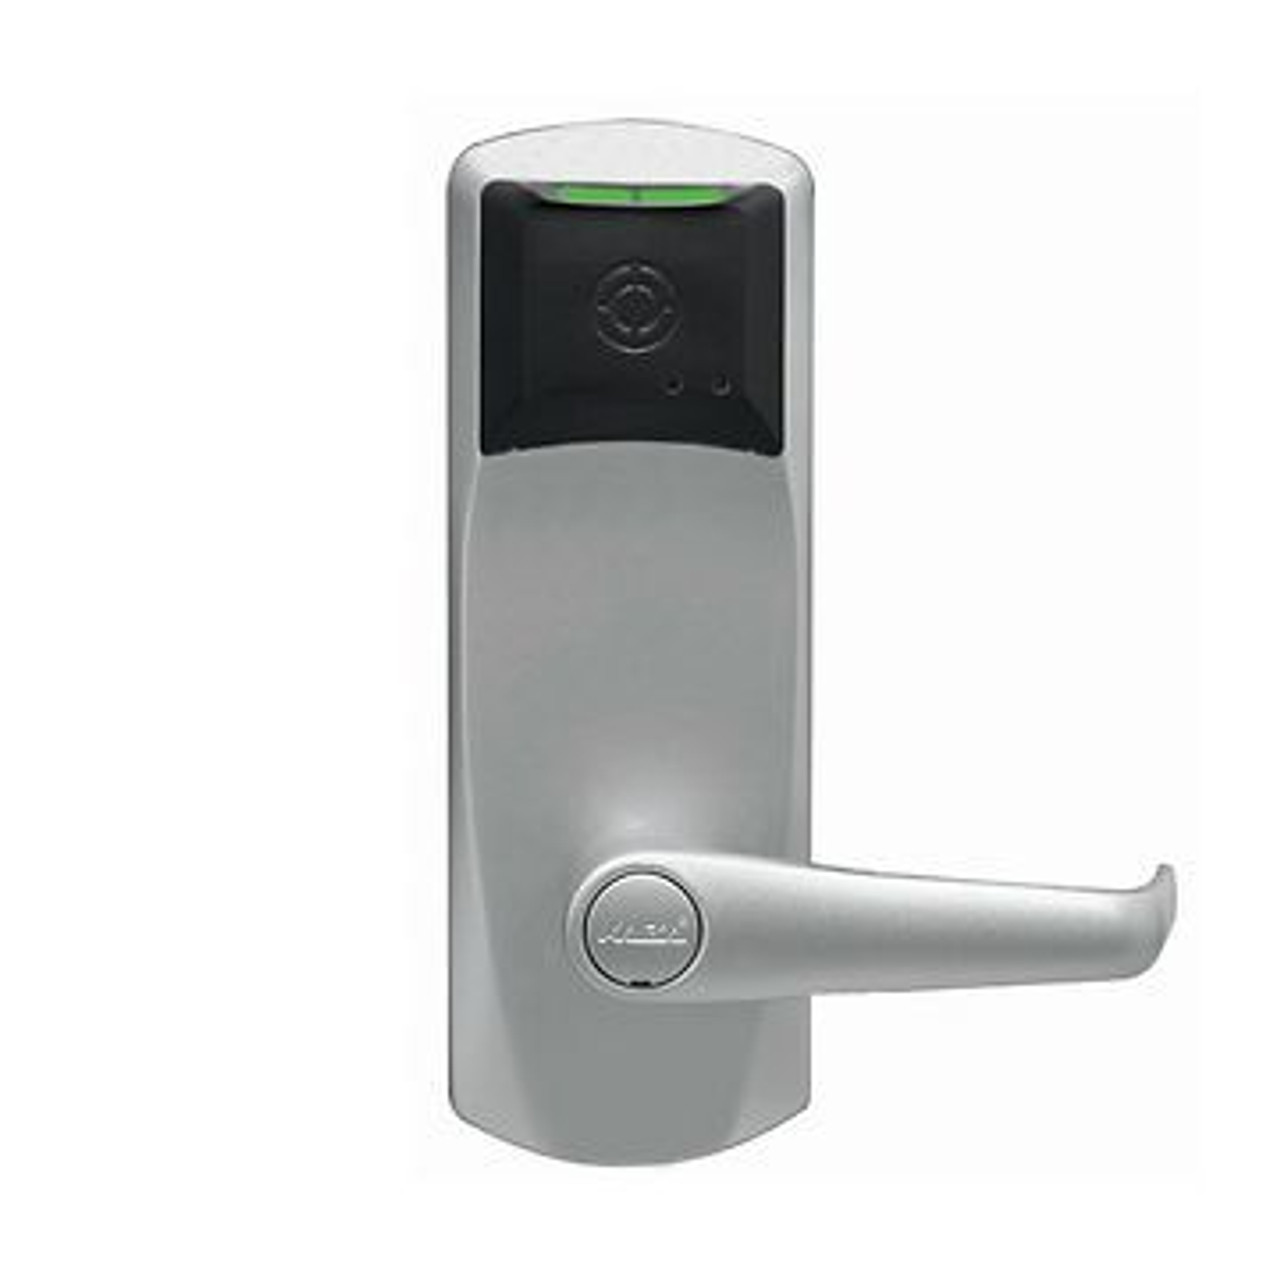 SAFLOK ILCO 79/RT CONTACTLESS DOOR LOCK